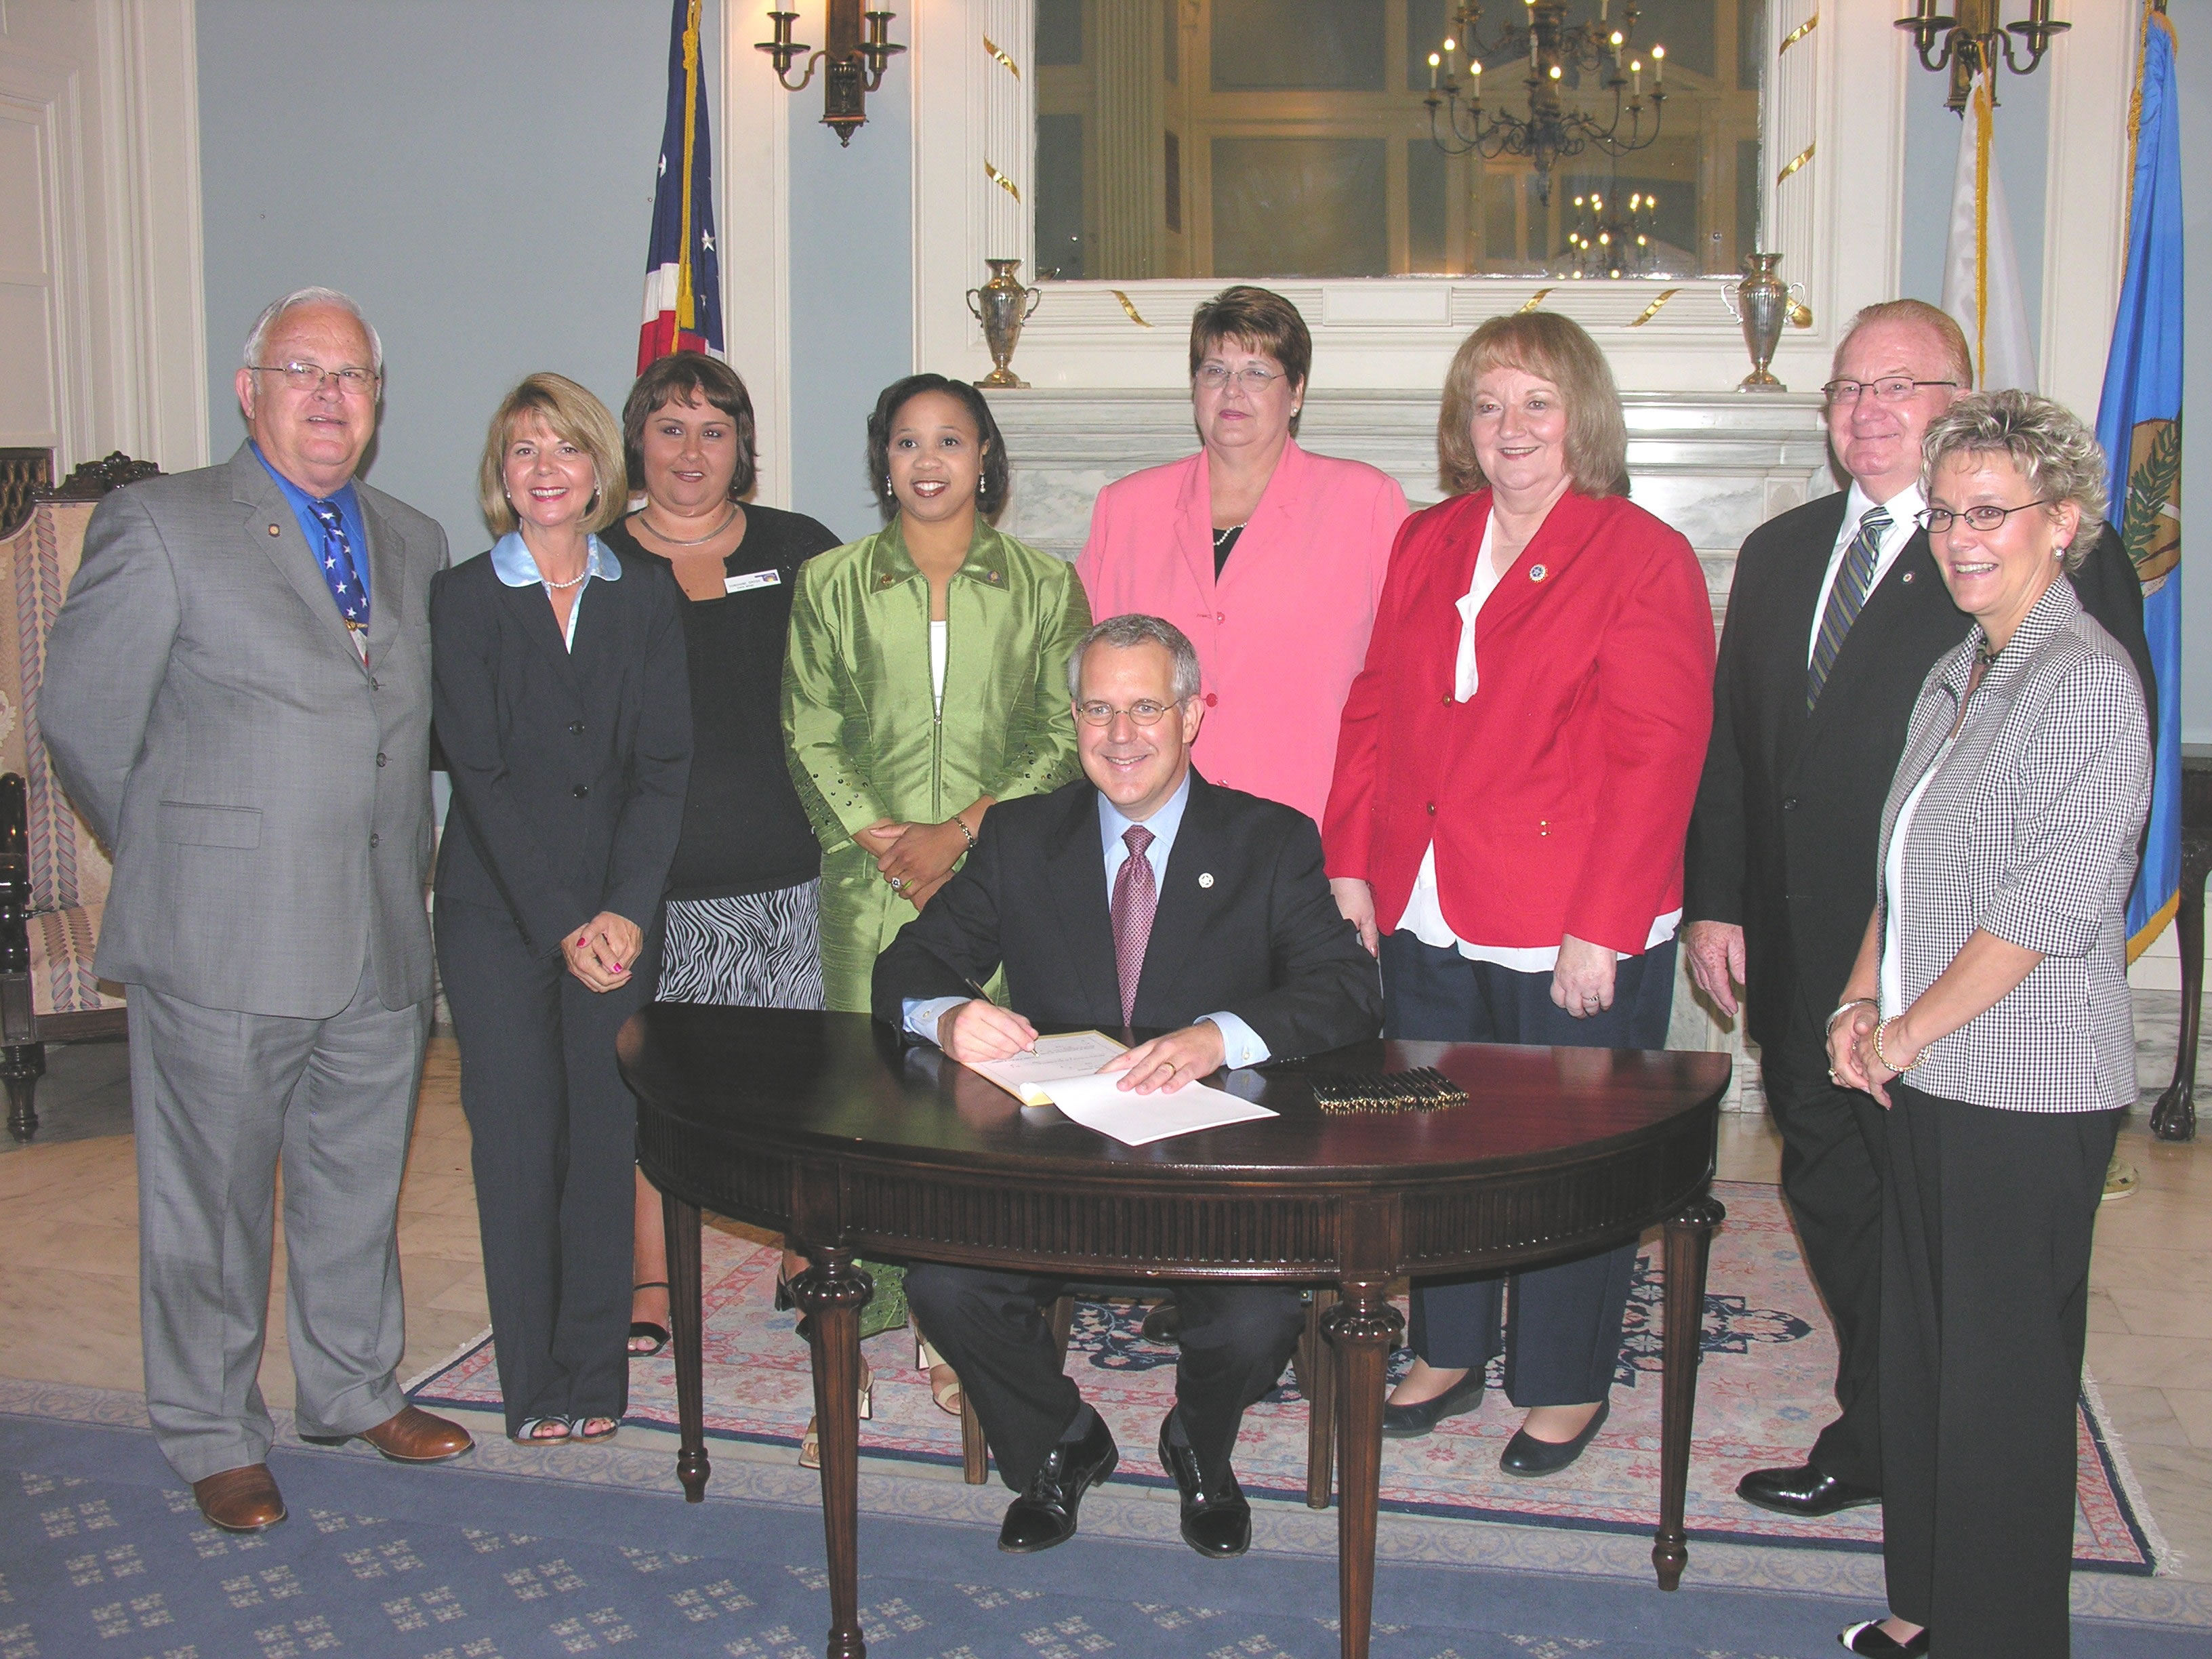 Ceremonial signing of Senate Bill 2163 in the Governor's Blue Room.